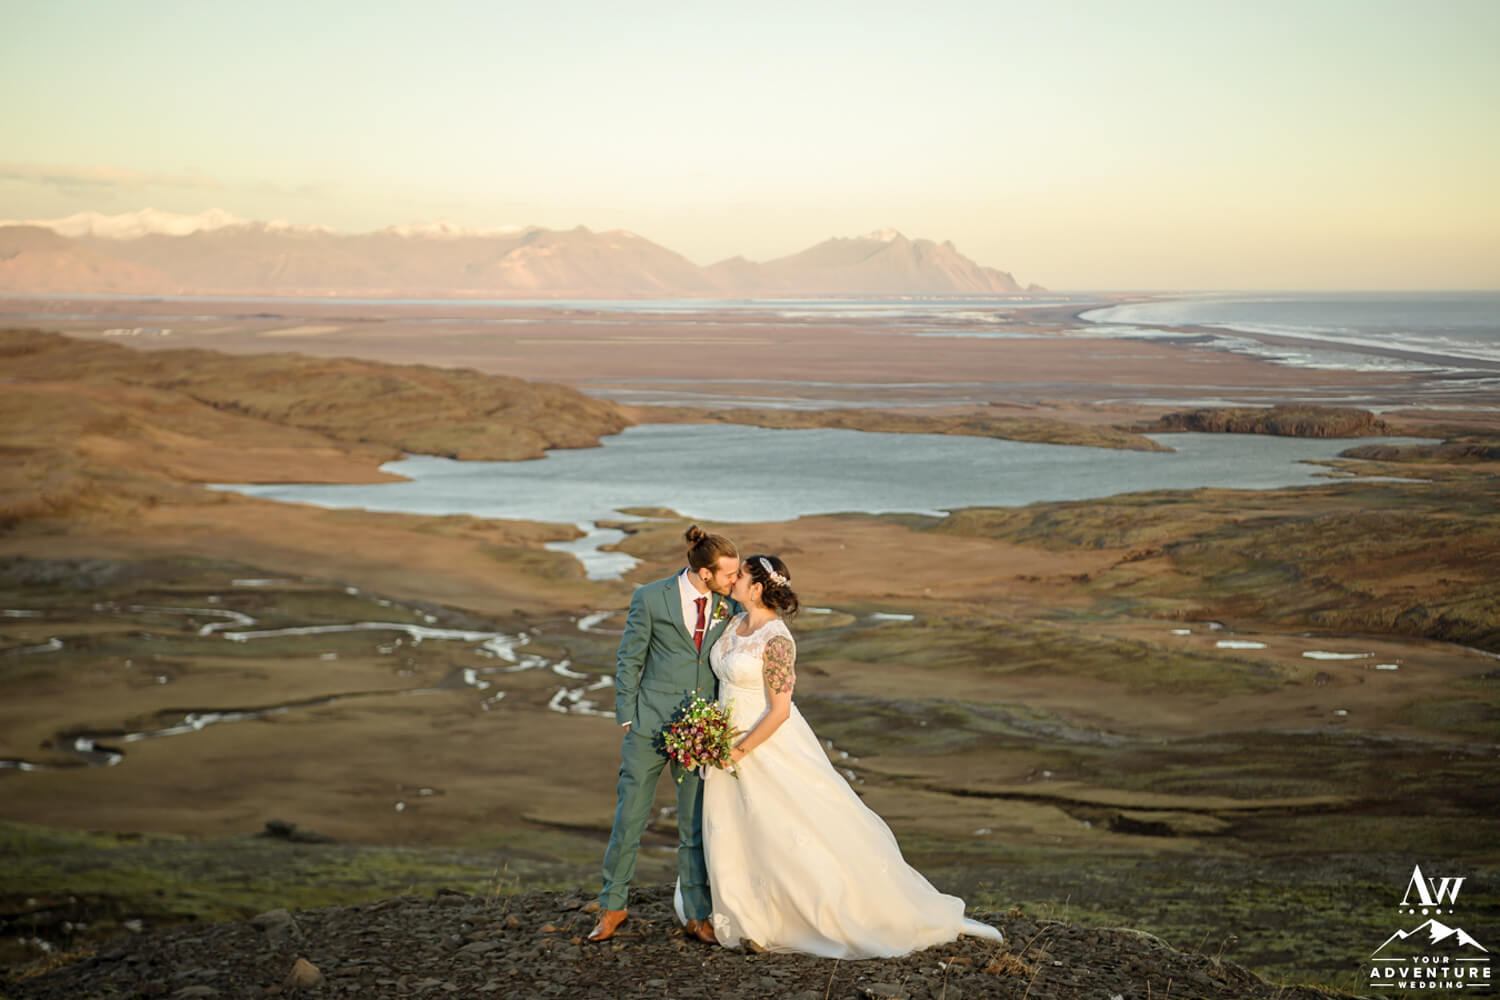 Sunset Elopement Photos on a mountain in Iceland